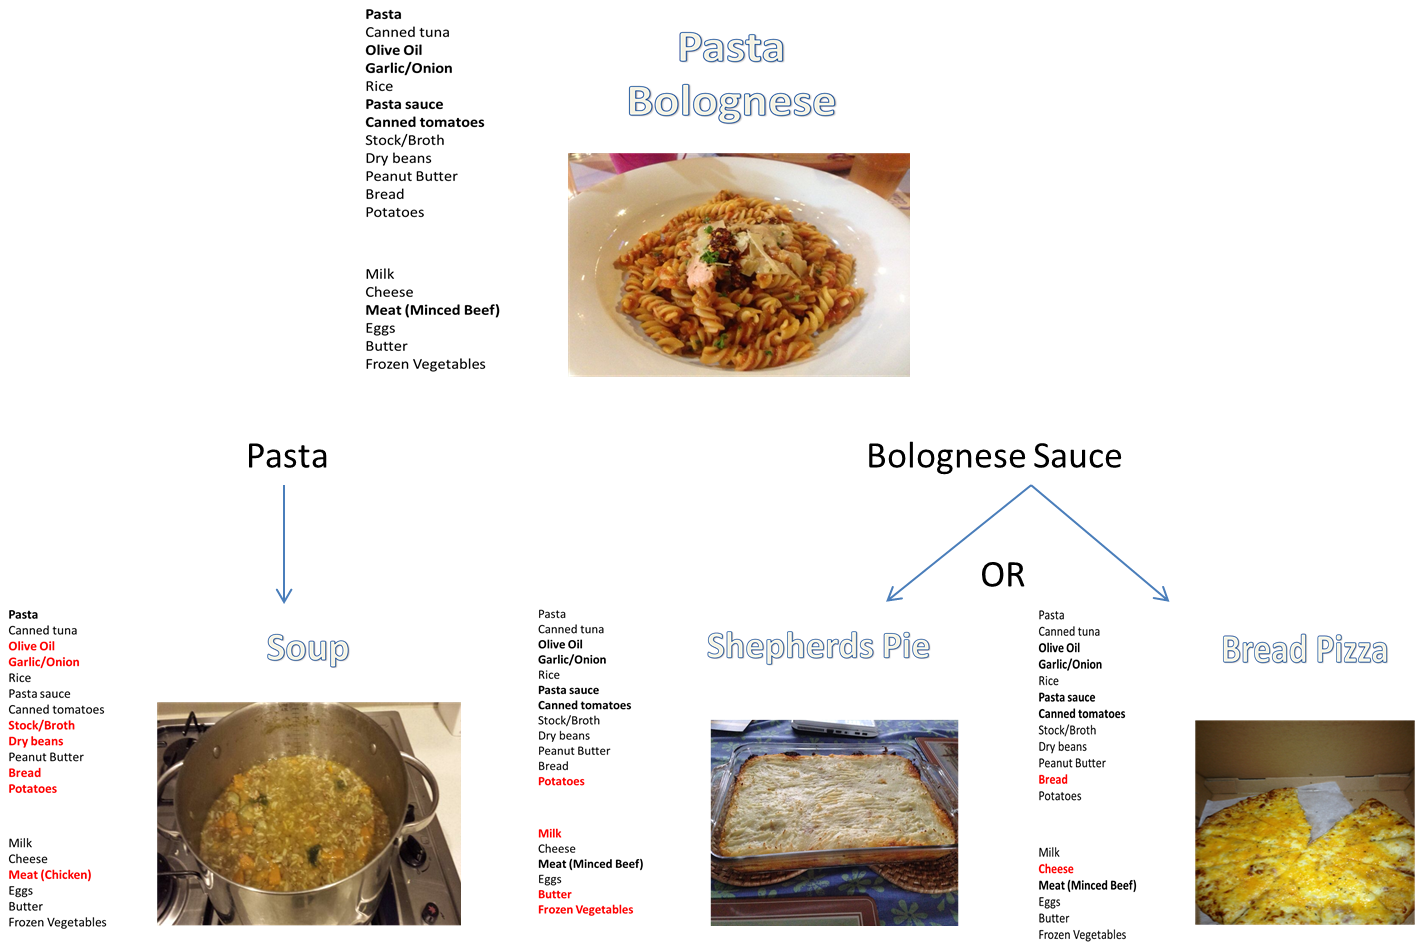 Microsoft Flow Chart Creator: Flow chart of meal ideas.png - Wikimedia Commons,Chart